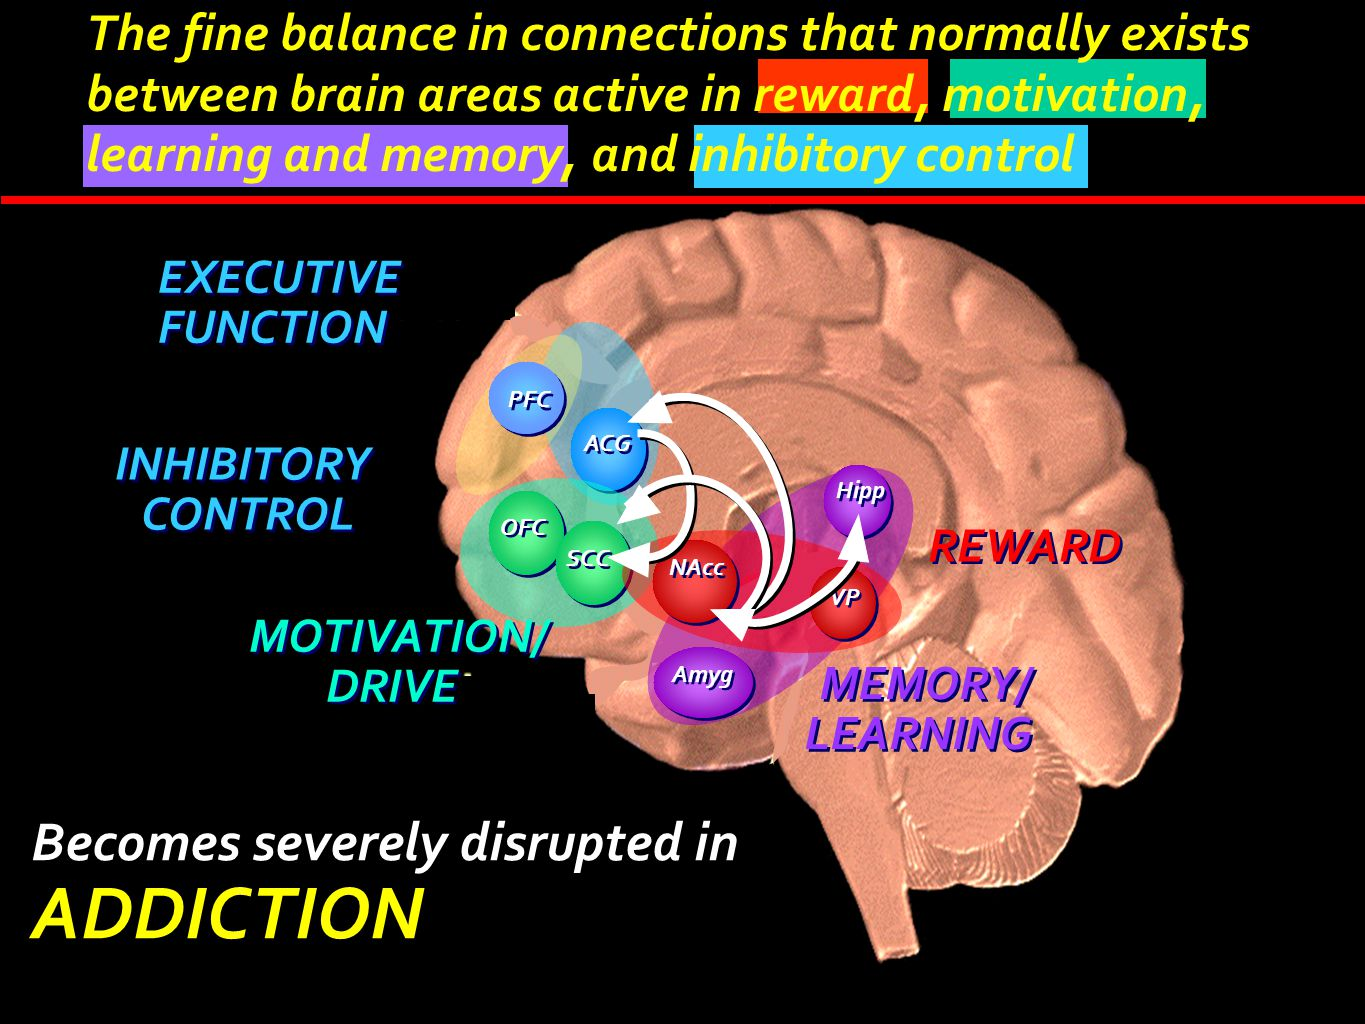 ADDICTION Becomes severely disrupted in